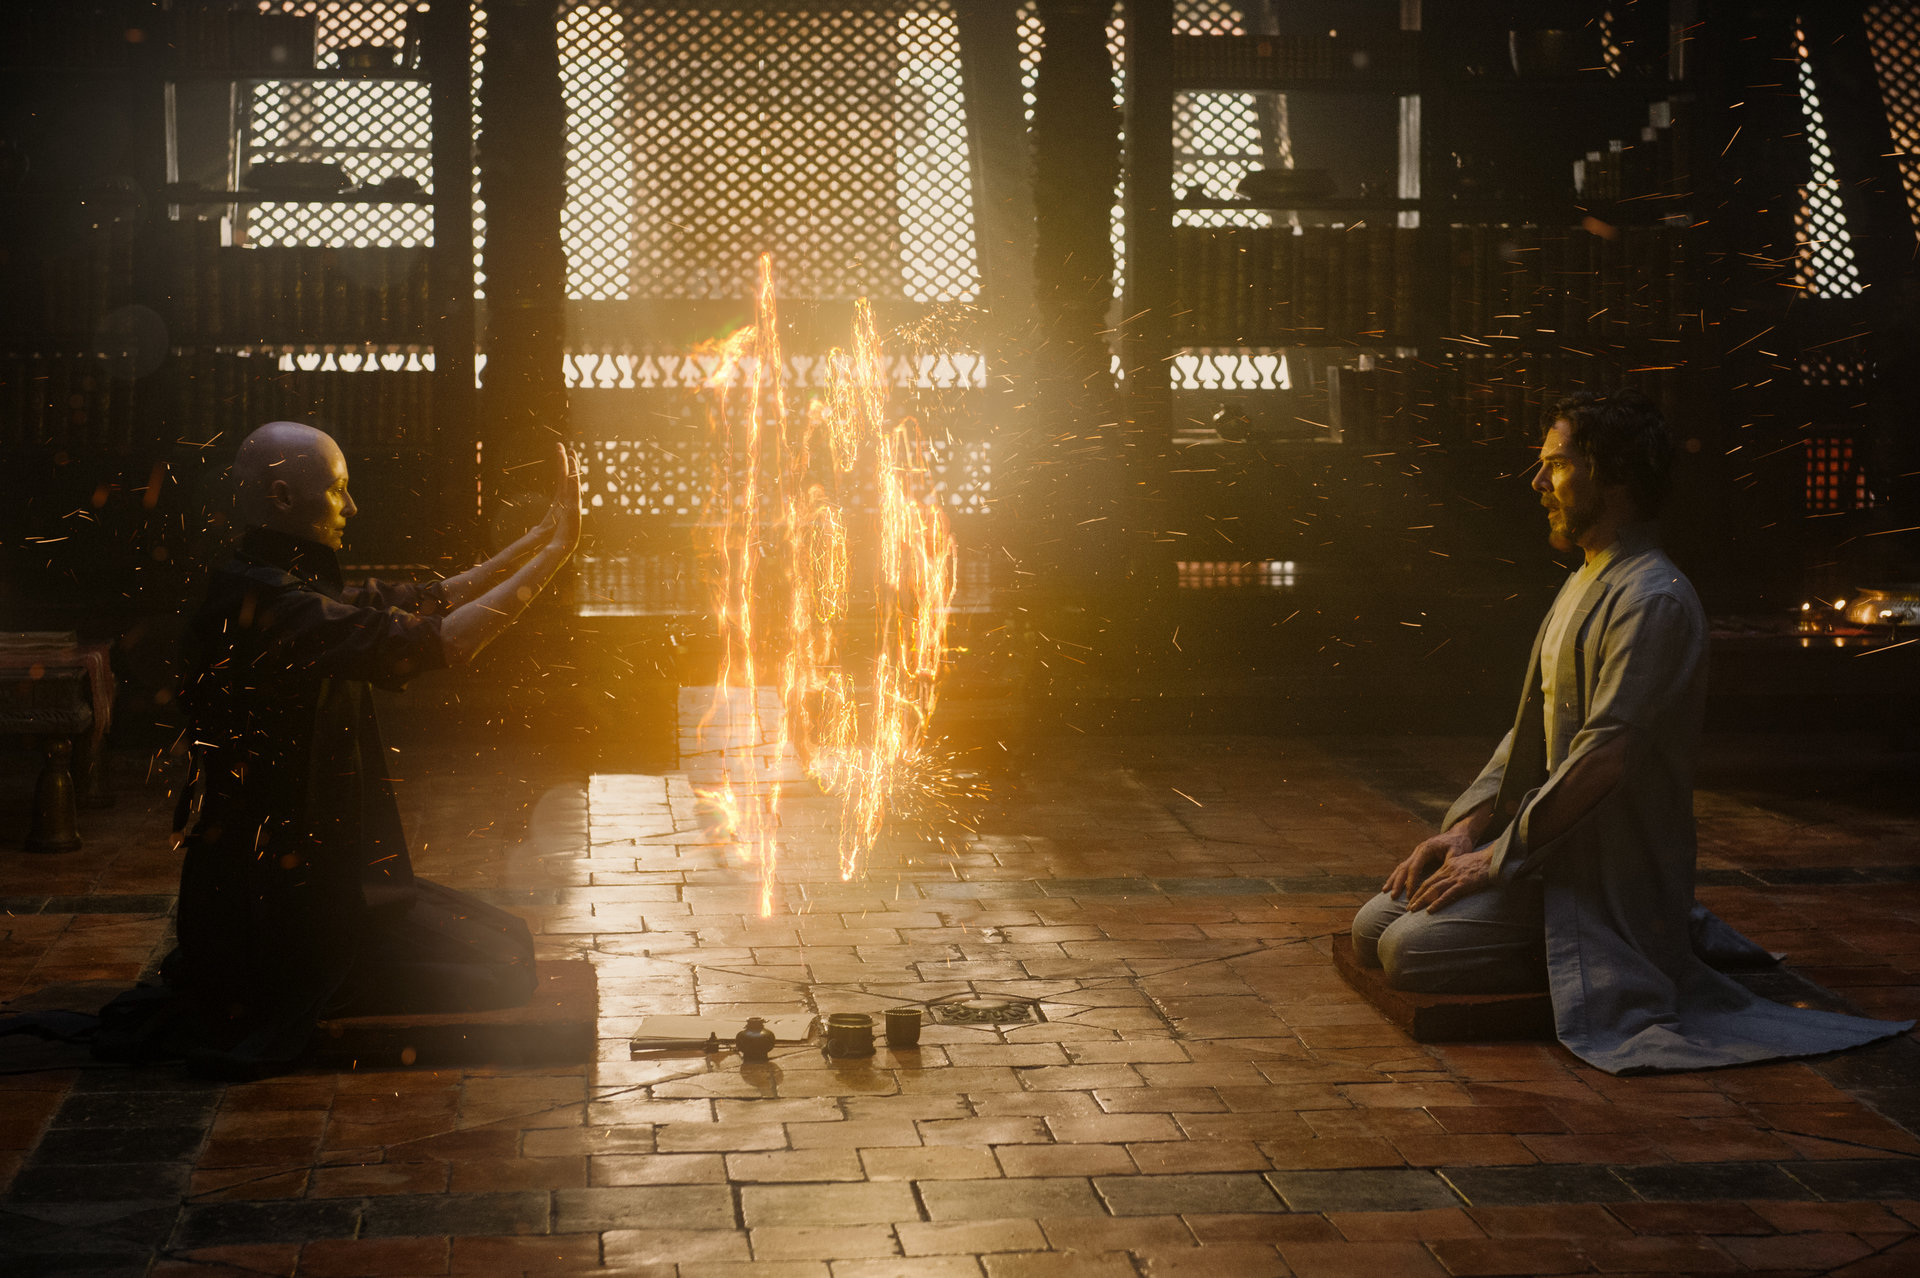 Marvel's DOCTOR STRANGE  L to R: The Ancient One (Tilda Swinton) and Doctor Stephen Strange (Benedict Cumberbatch)  Photo Credit: Jay Maidment  ©2016 Marvel. All Rights Reserved.